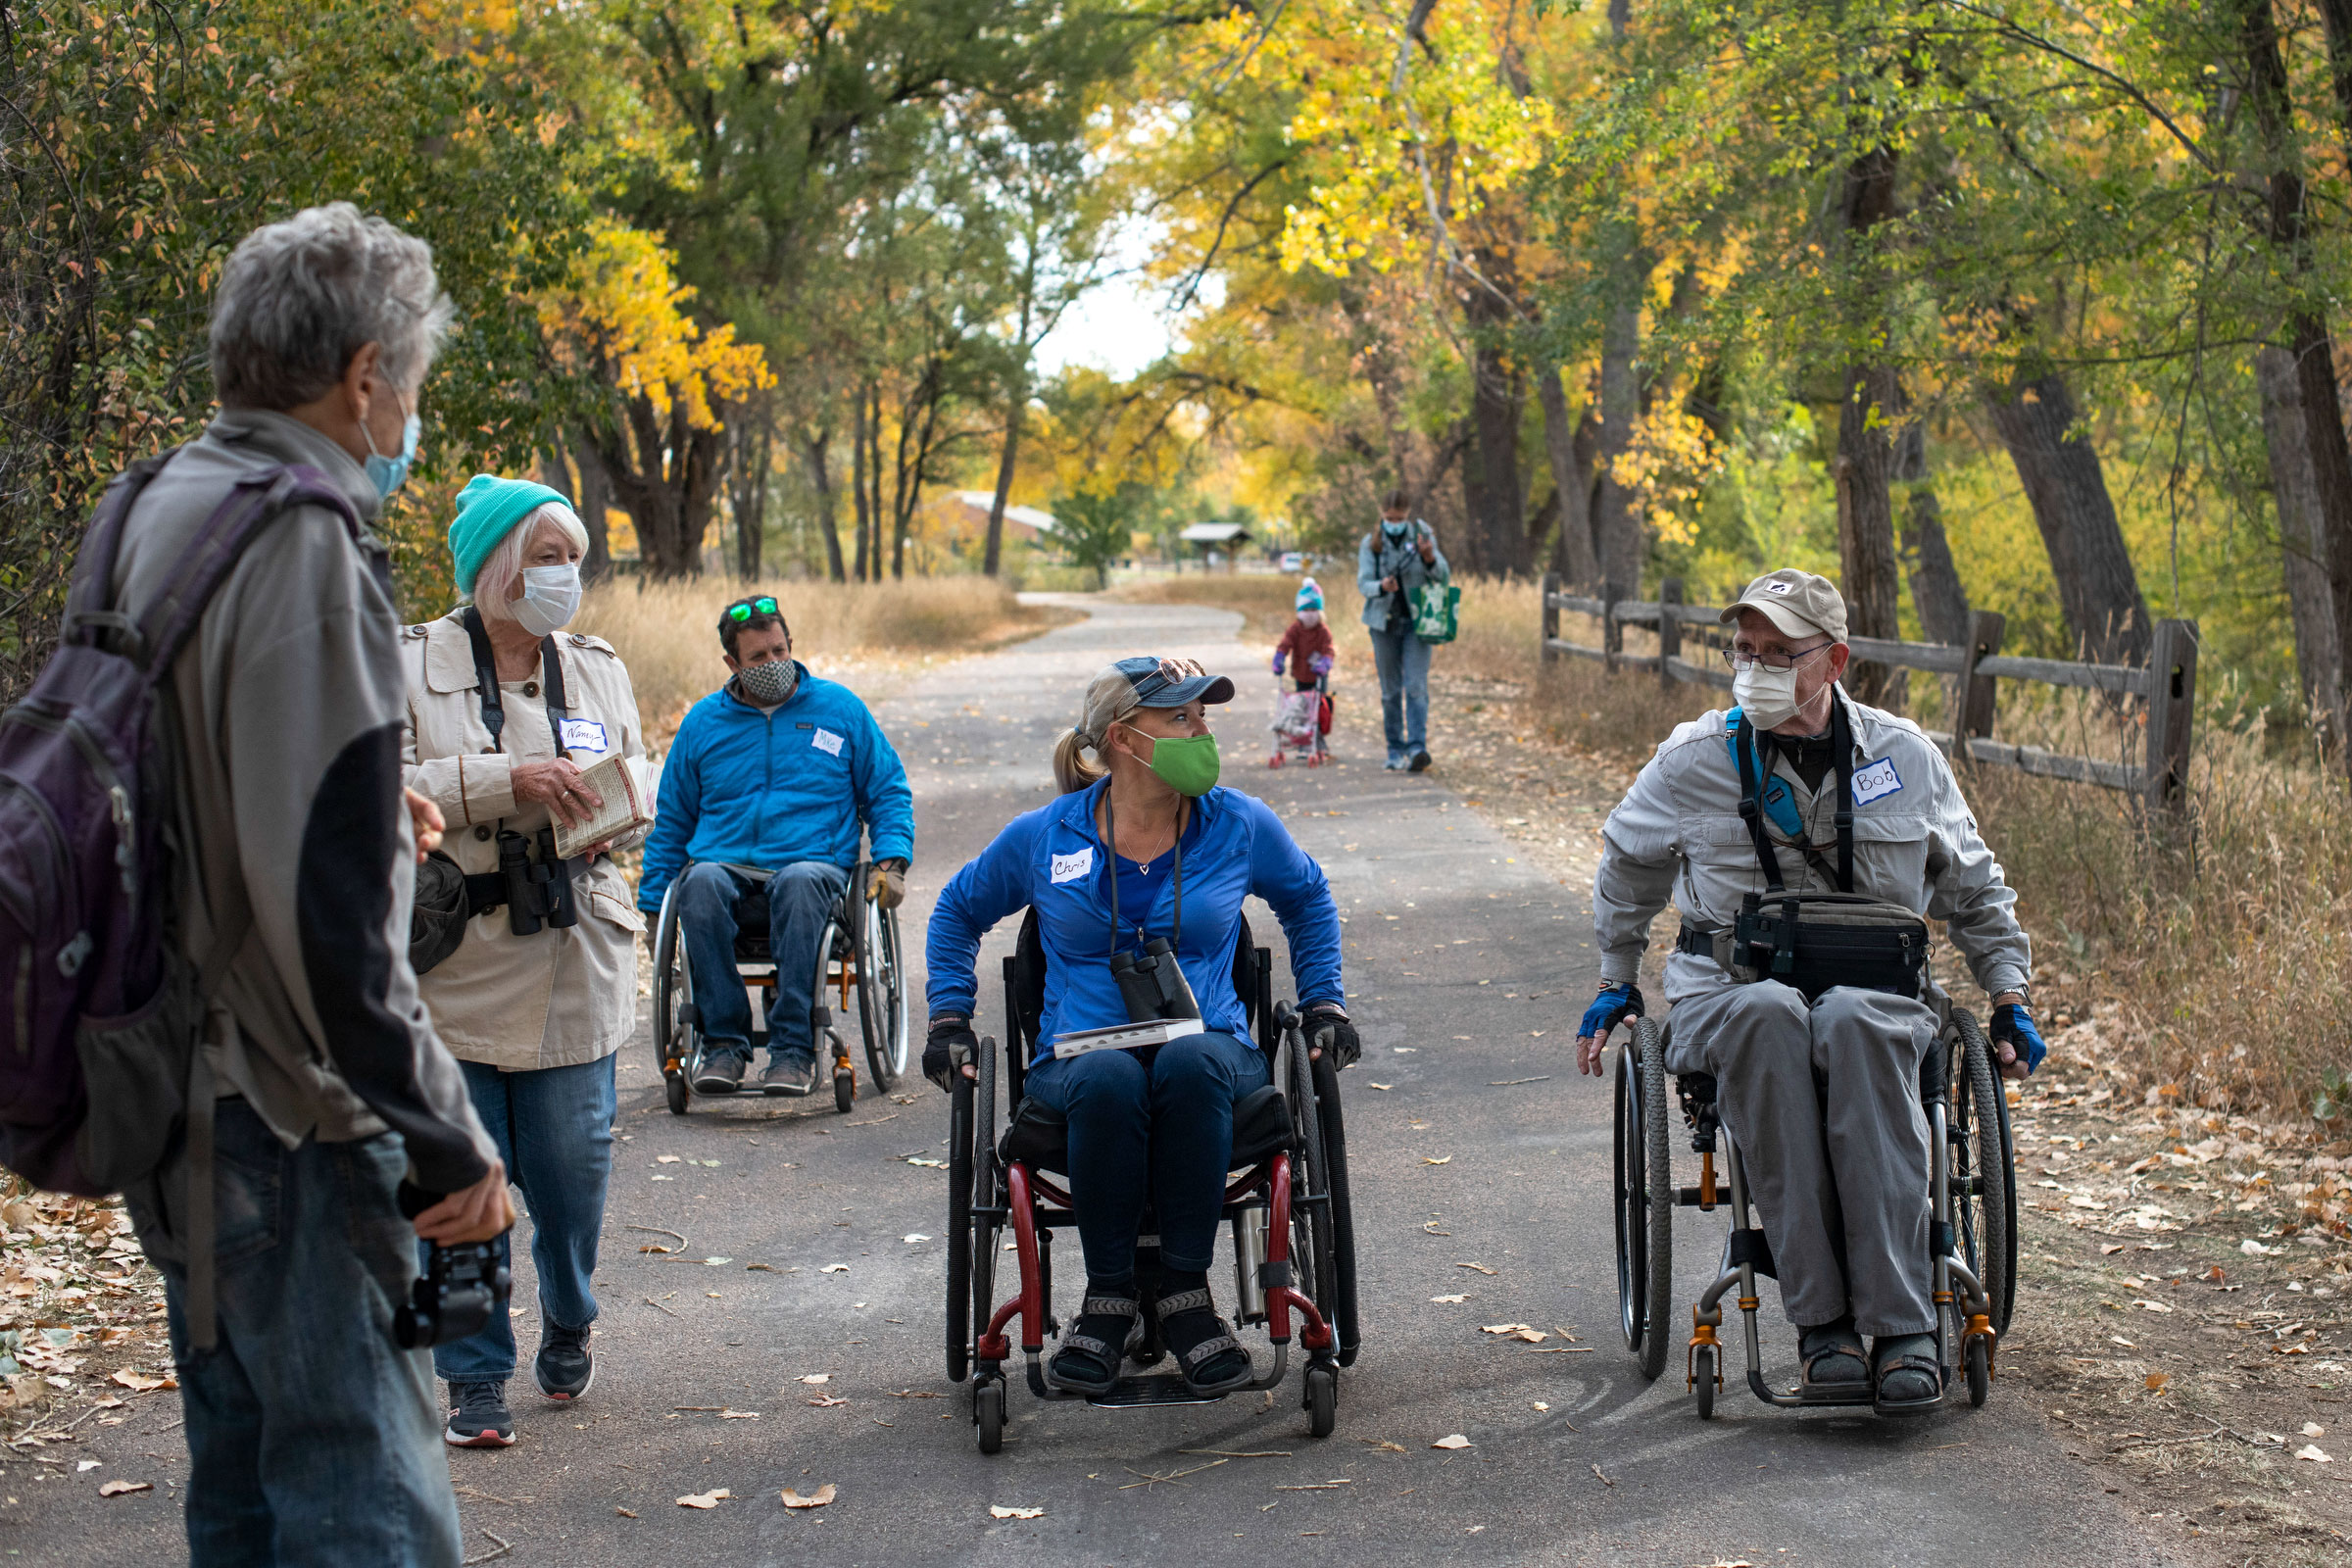 Attendees of a Birding Without Barriers trip discuss their sightings on the move. Rachel Woolf